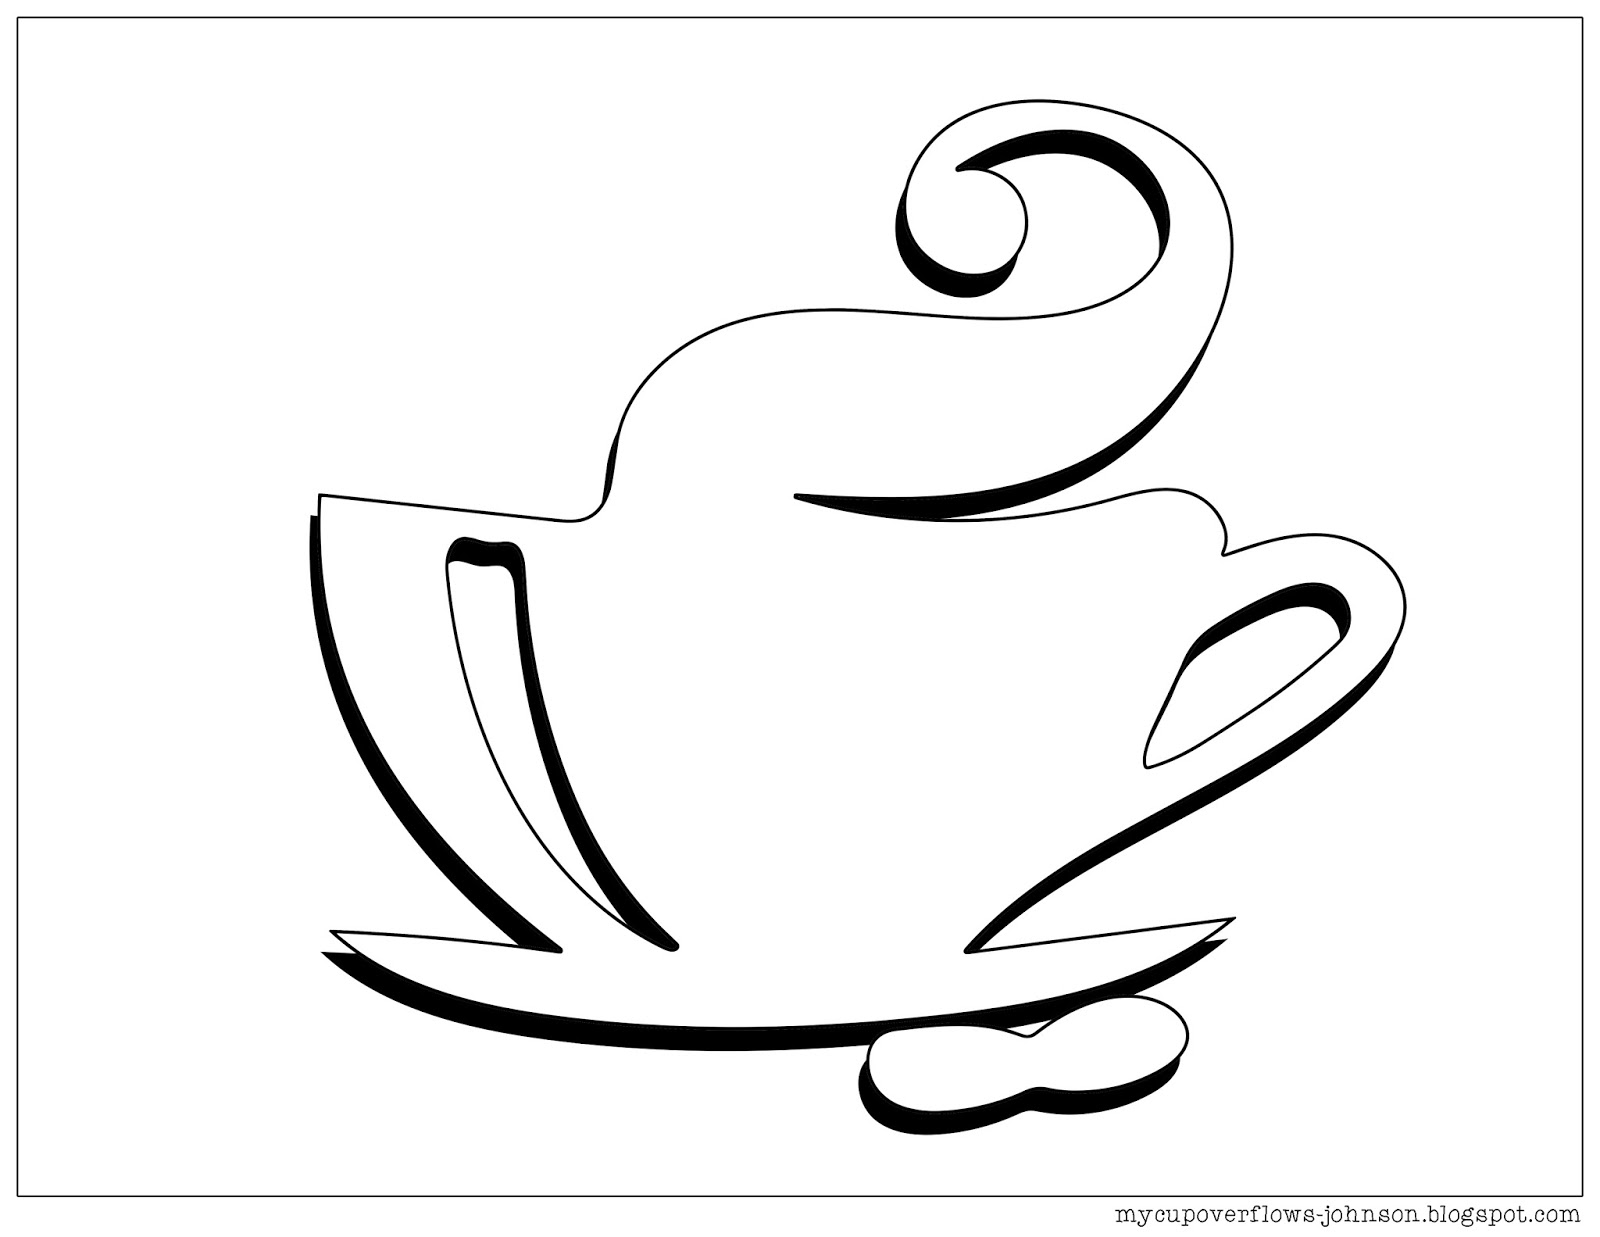 coffee cup coloring pages my cup overflows tea and coffee coffee coloring pages cup